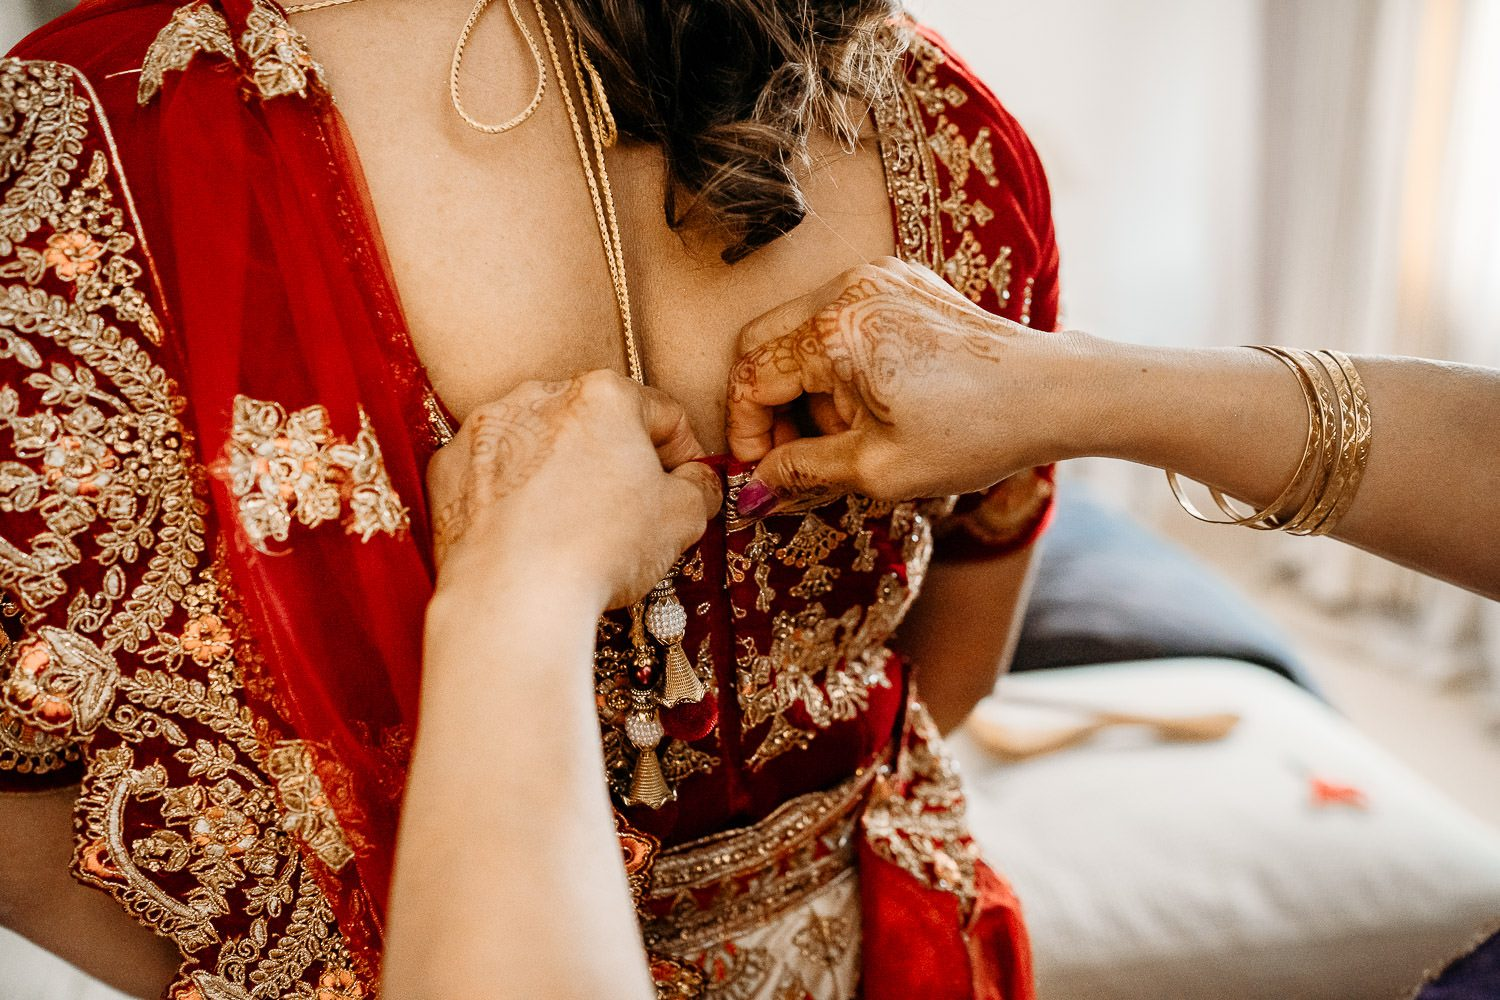 brides mother helping bride put on red sari for wedding